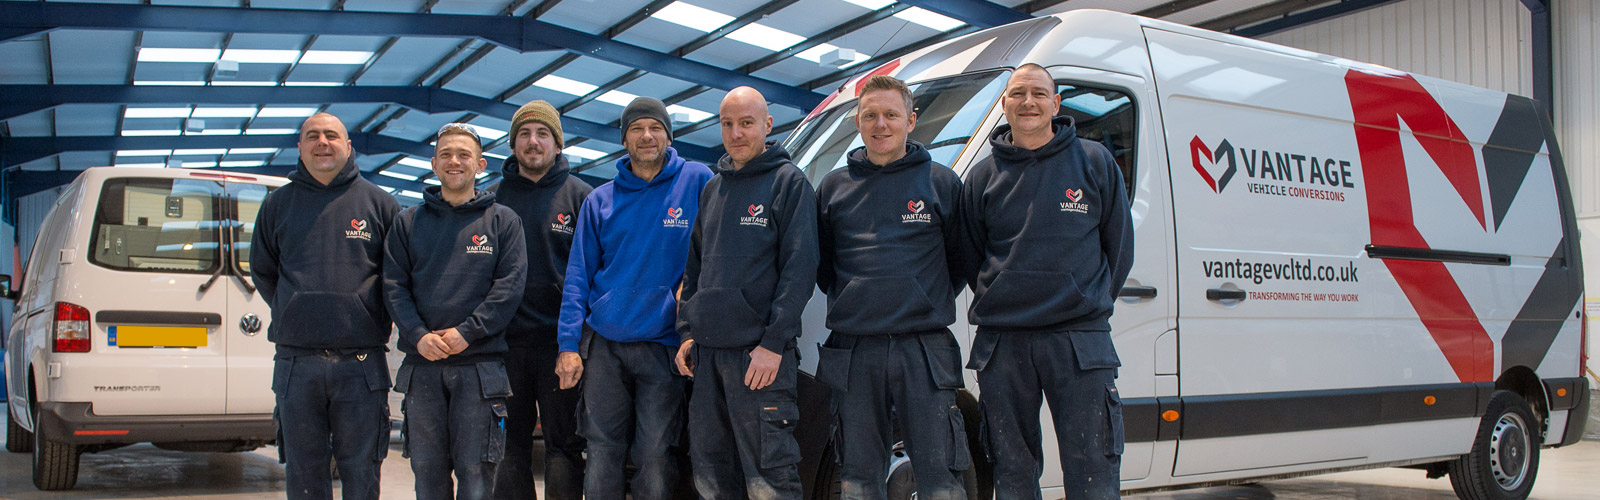 Telford-based Vantage Vehicle Conversions undertakes vehicle conversion projects throughout the UK with its team of road based expert Mobile Fitters.